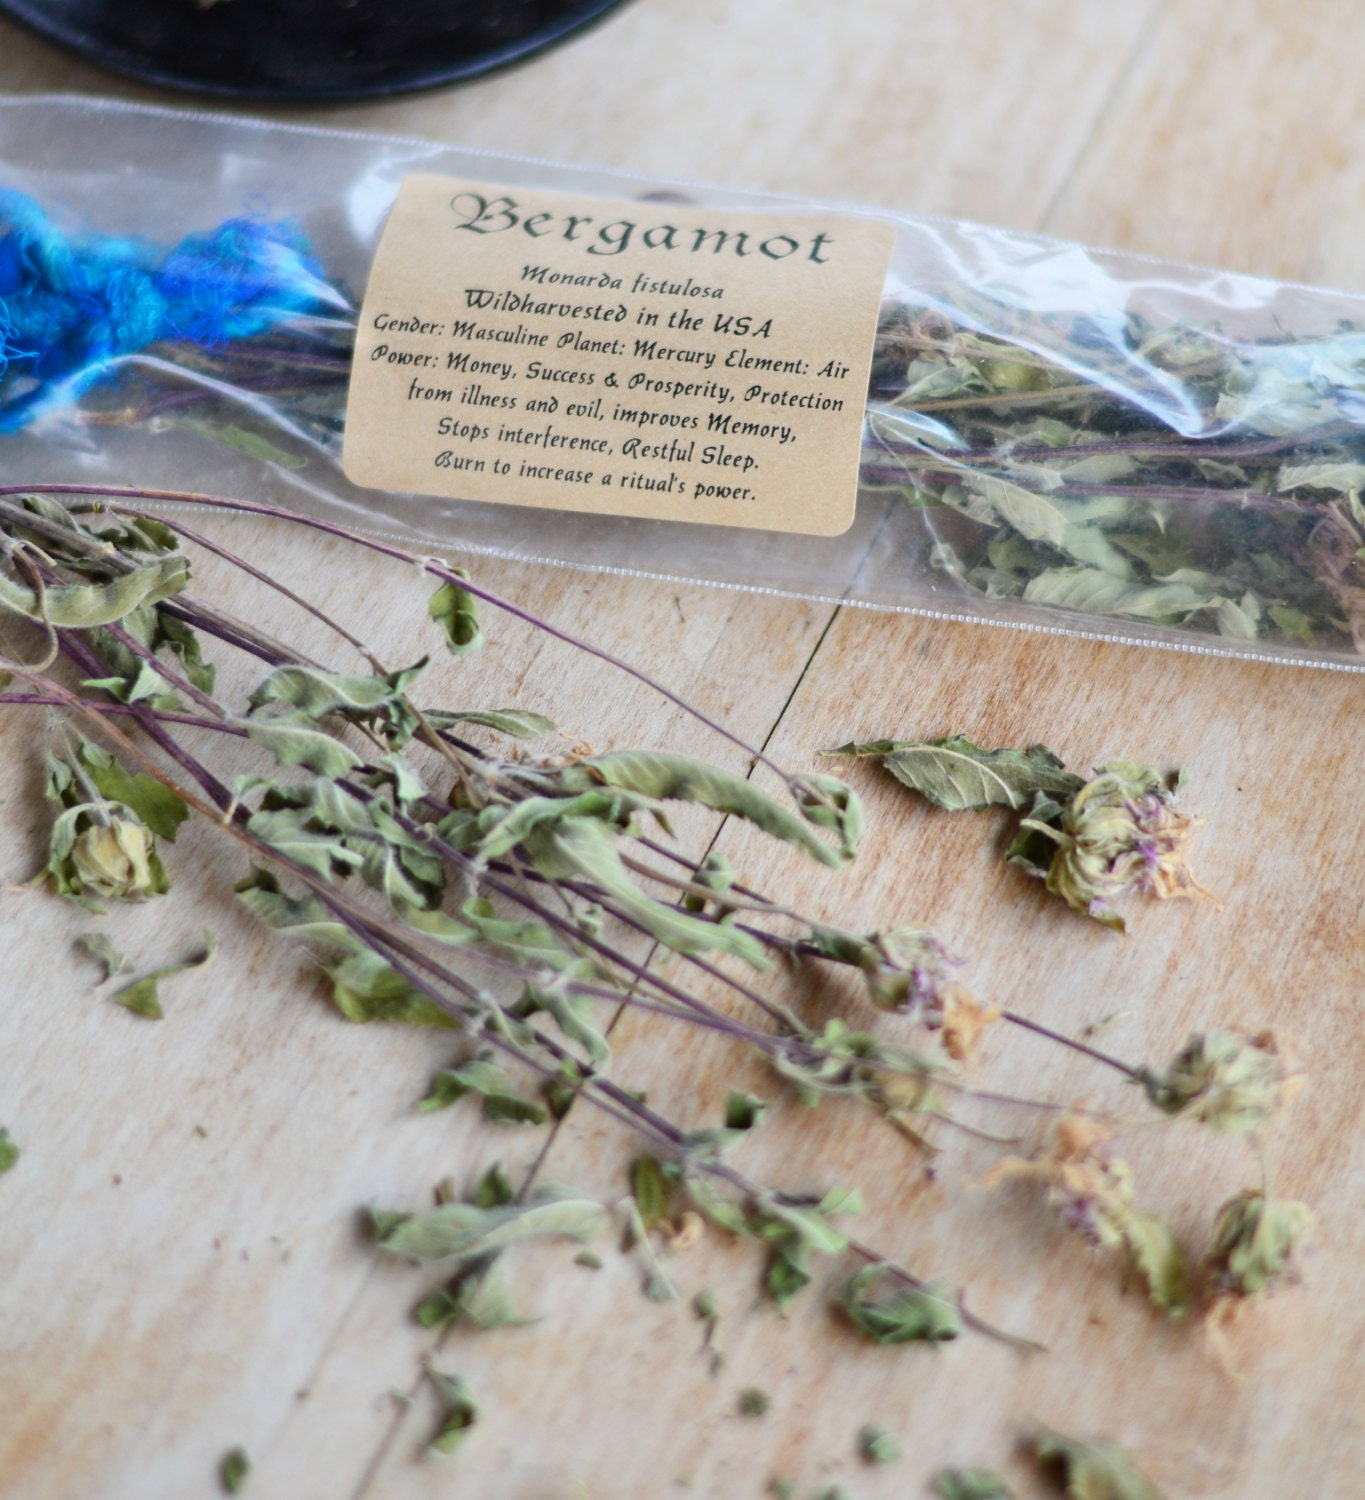 BERGAMOT HERB WILDCRAFTED witch herbs wiccan herbs dried